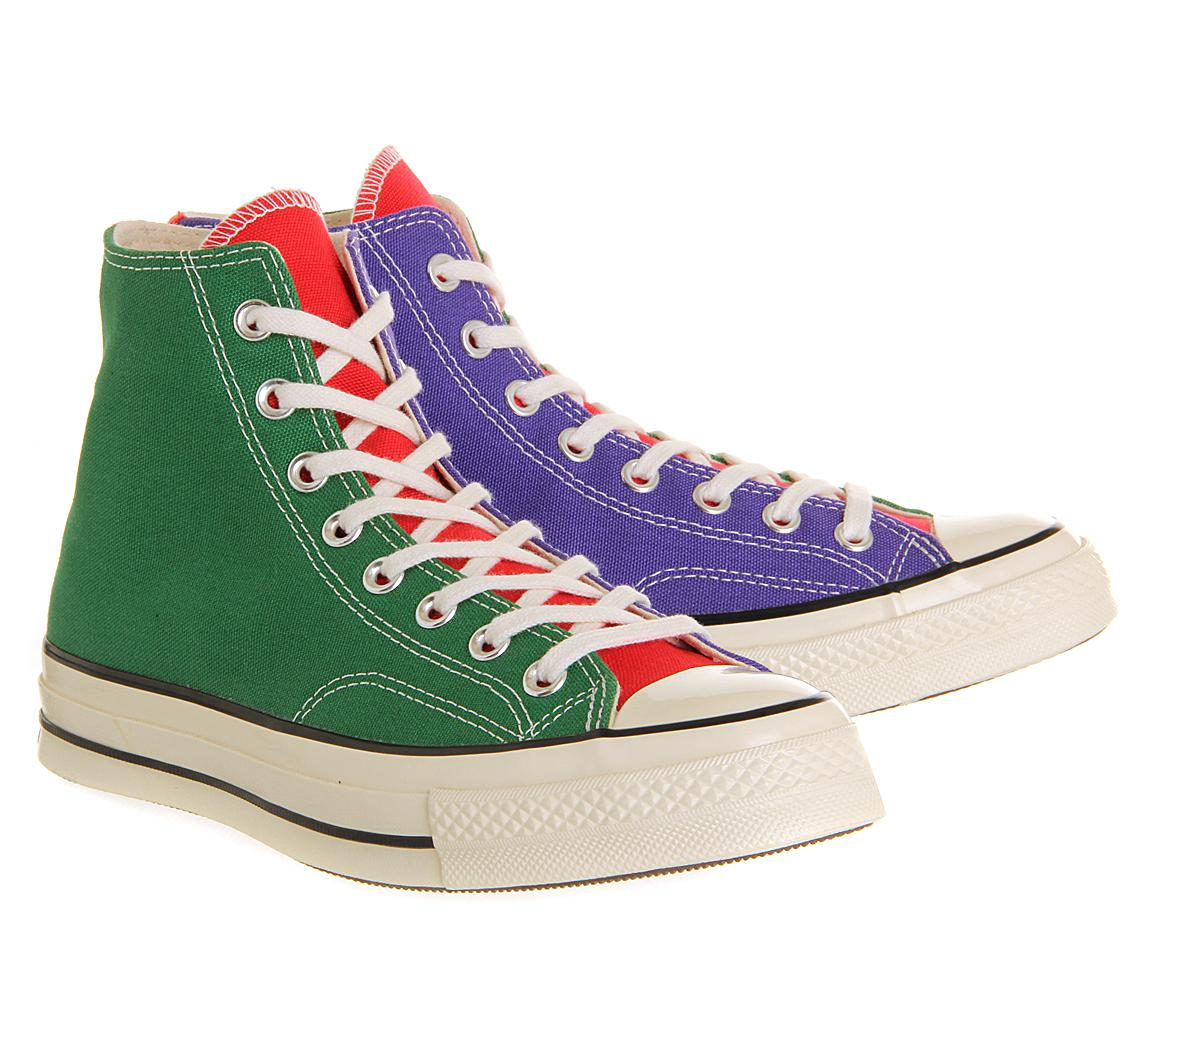 1ced857419e1 Lyst - Converse All Star Hi 70 s in Green for Men